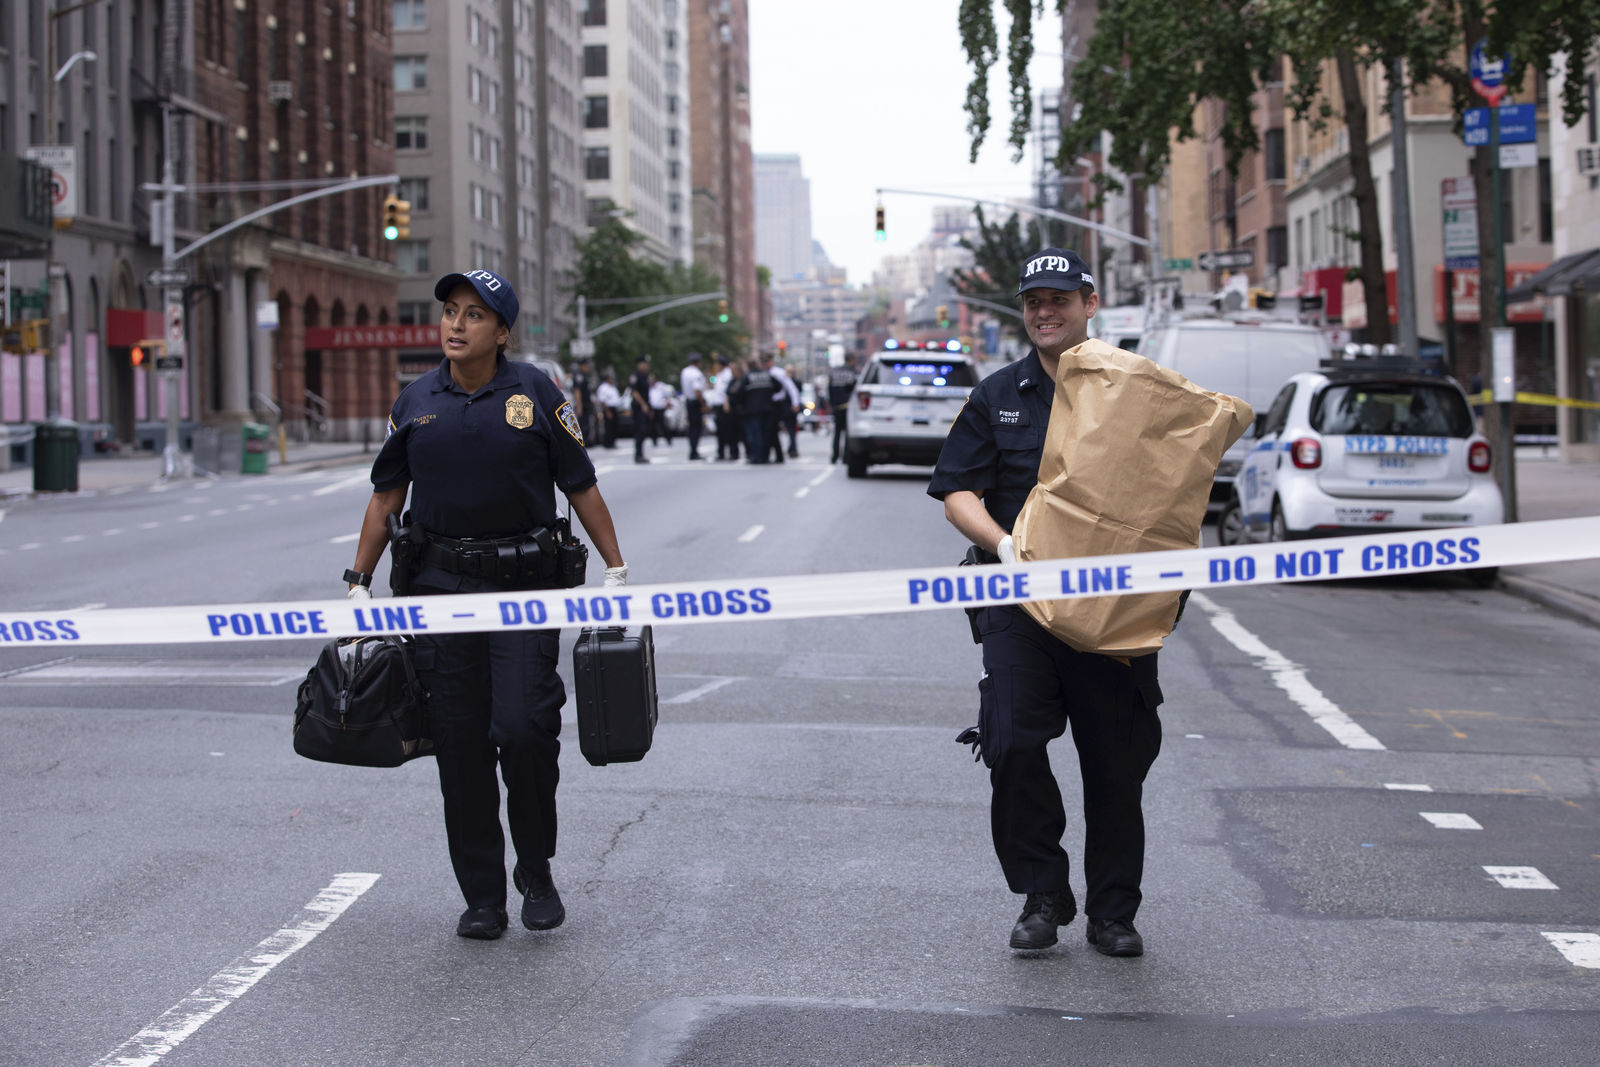 An investigator carries away a suspicious package as evidence after it was thought to be an explosive device in Manhattan's Chelsea neighborhood Friday, Aug. 16, 2019, in New York. (AP Photo/Kevin Hagen).